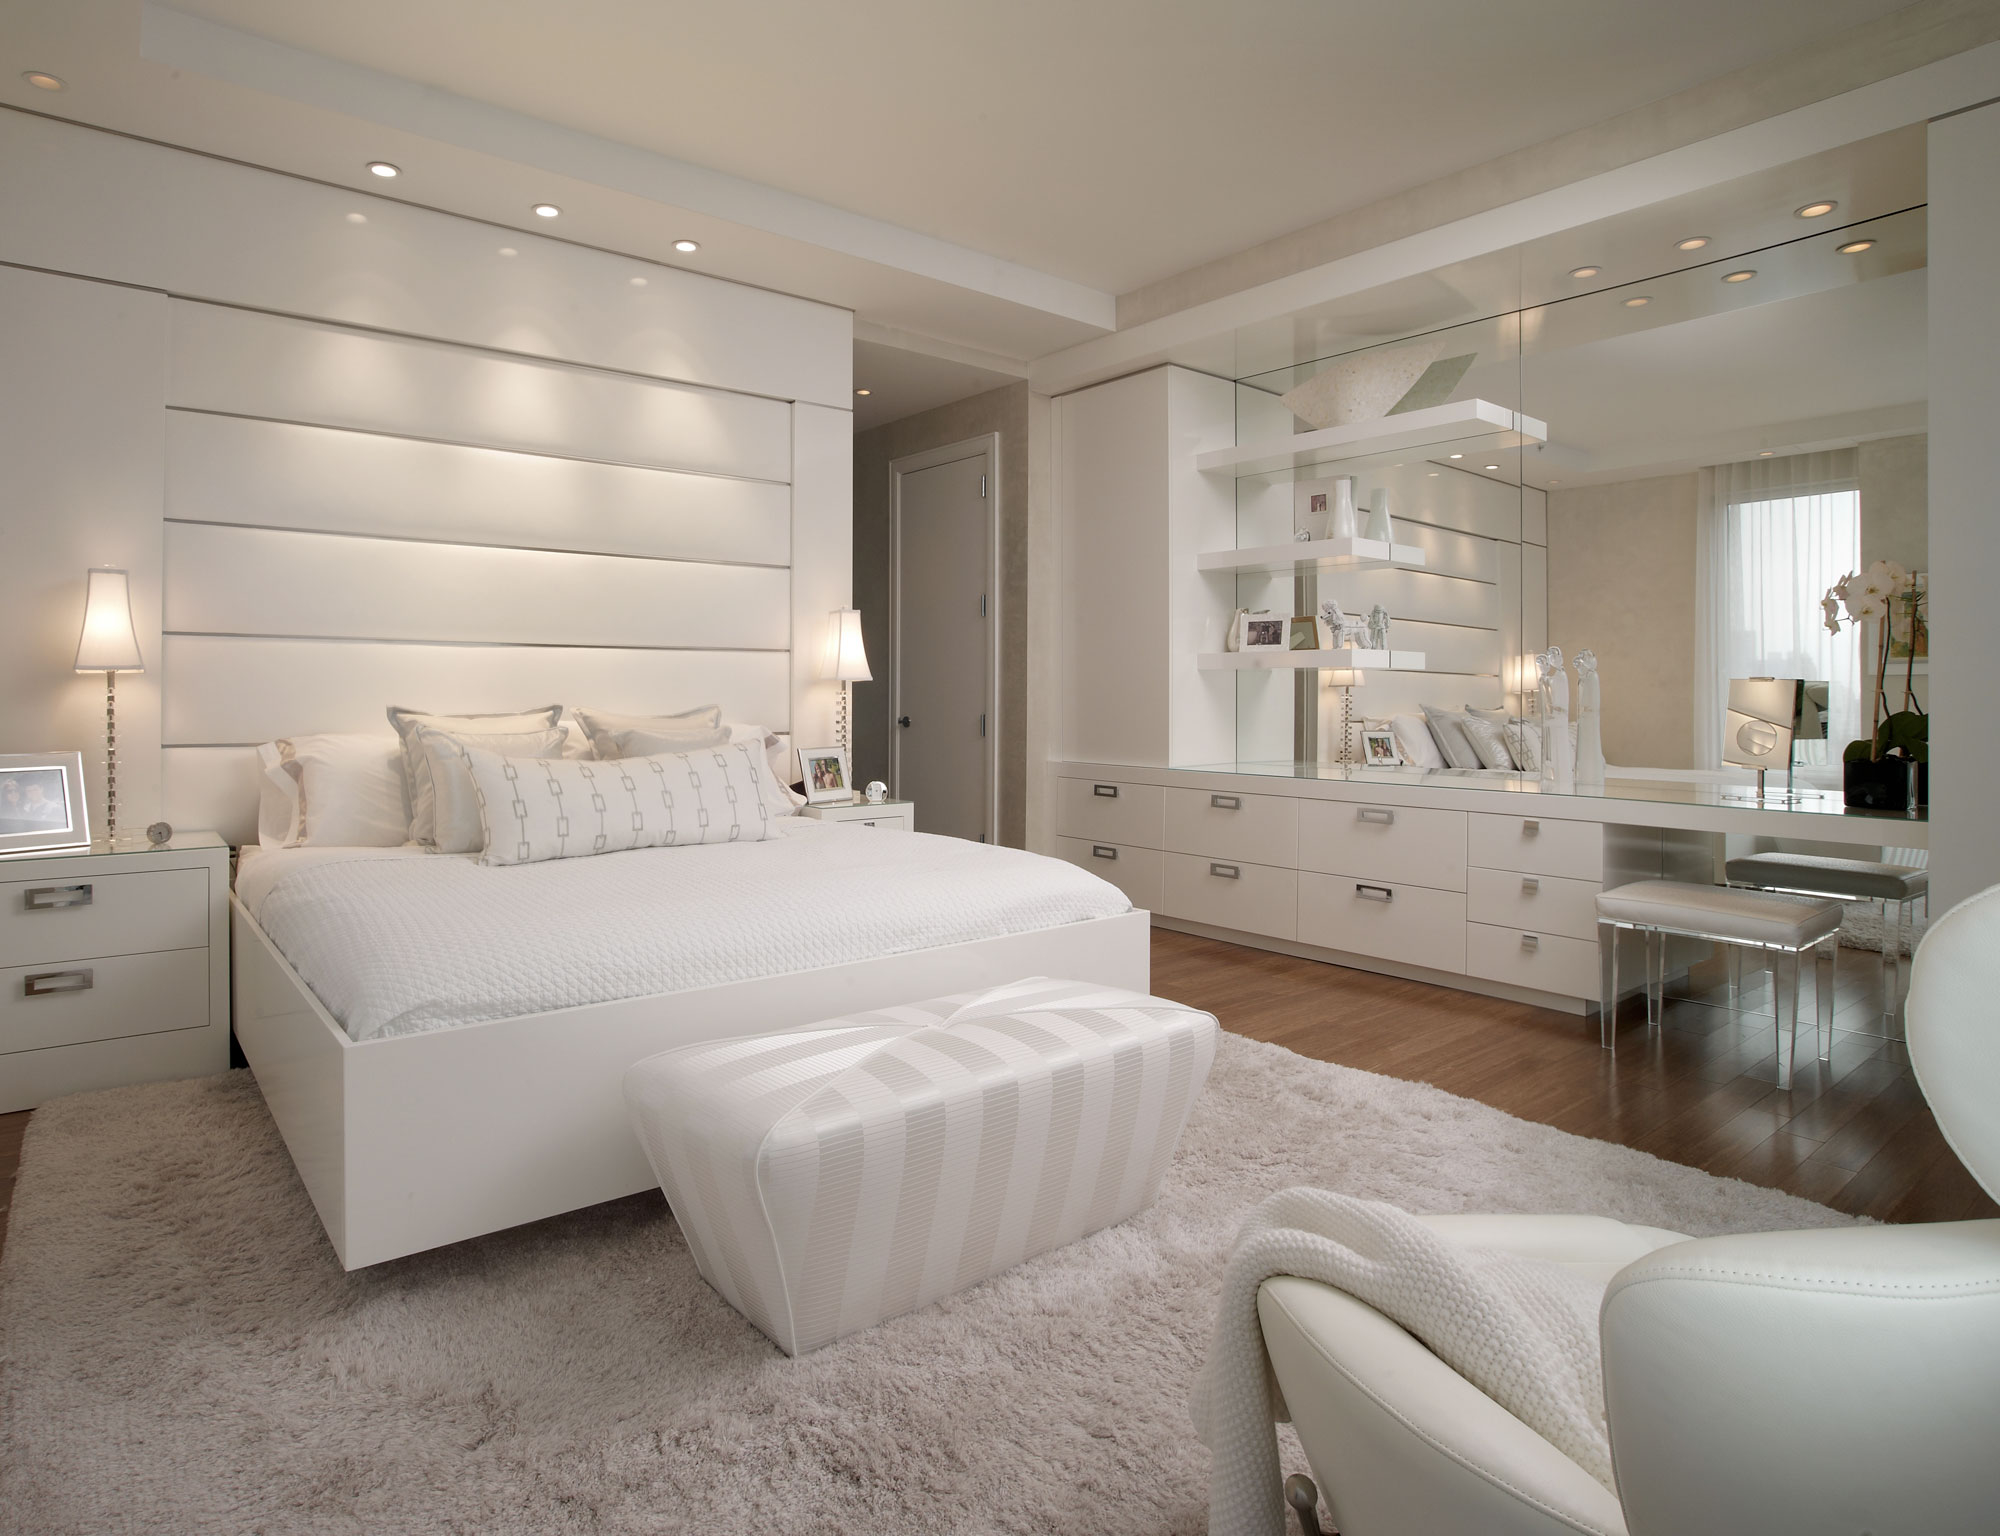 Glamour bedroom design ideas 33 house decoration ideas for Glamorous bedroom pictures